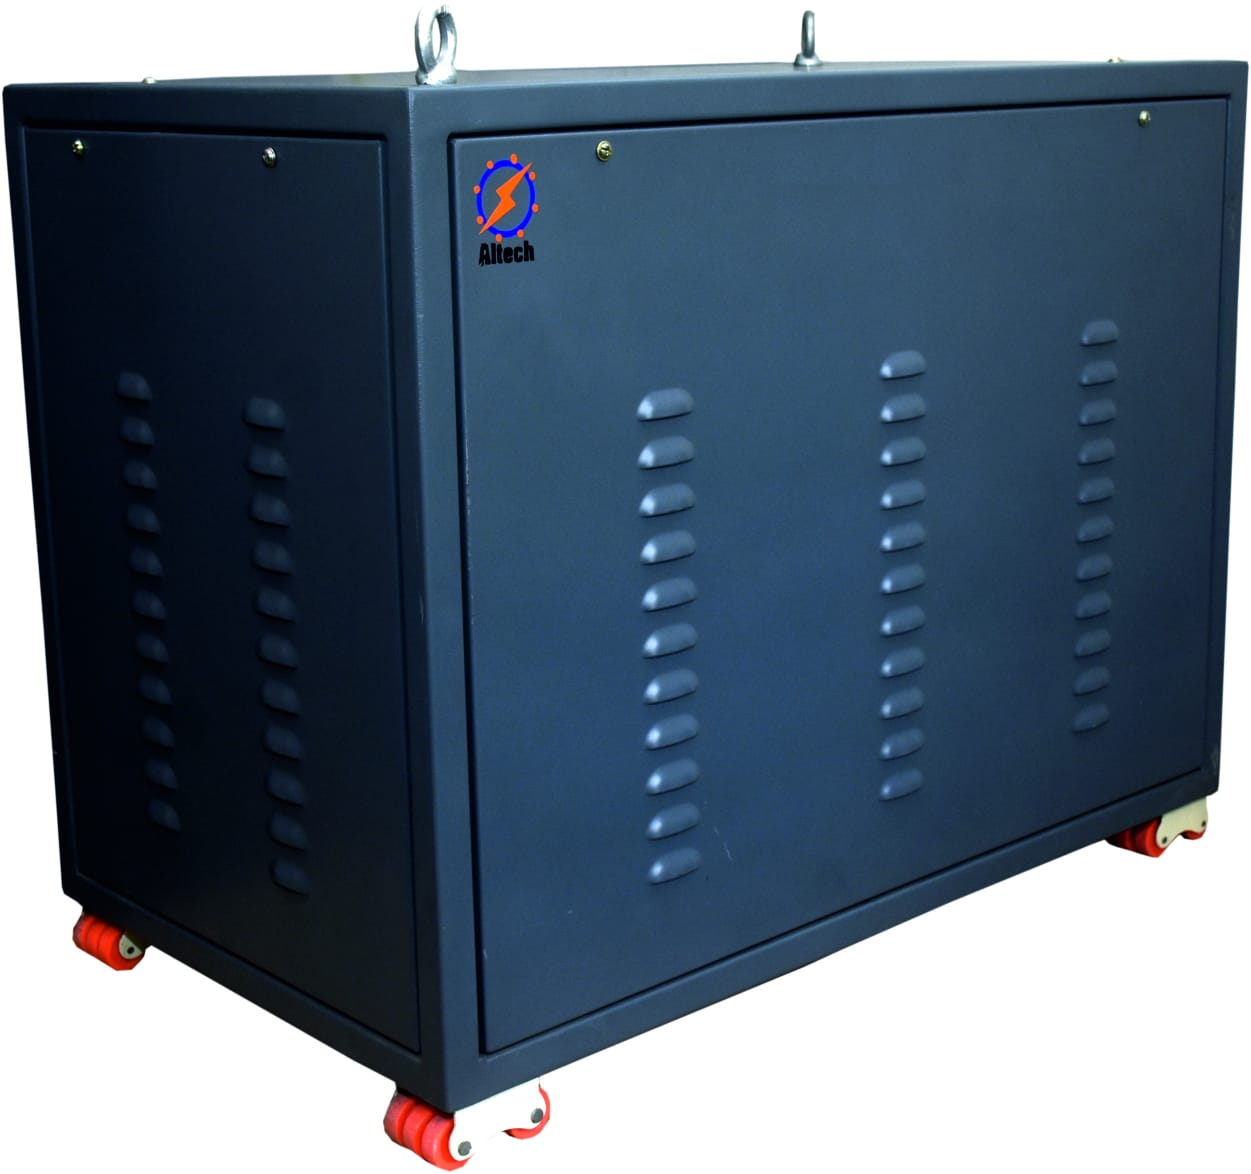 3 Phase ultra isolation Transformers  | Altech Controls | ultra isolation Transformers  manufacturer in Chandigarh - GLK2852